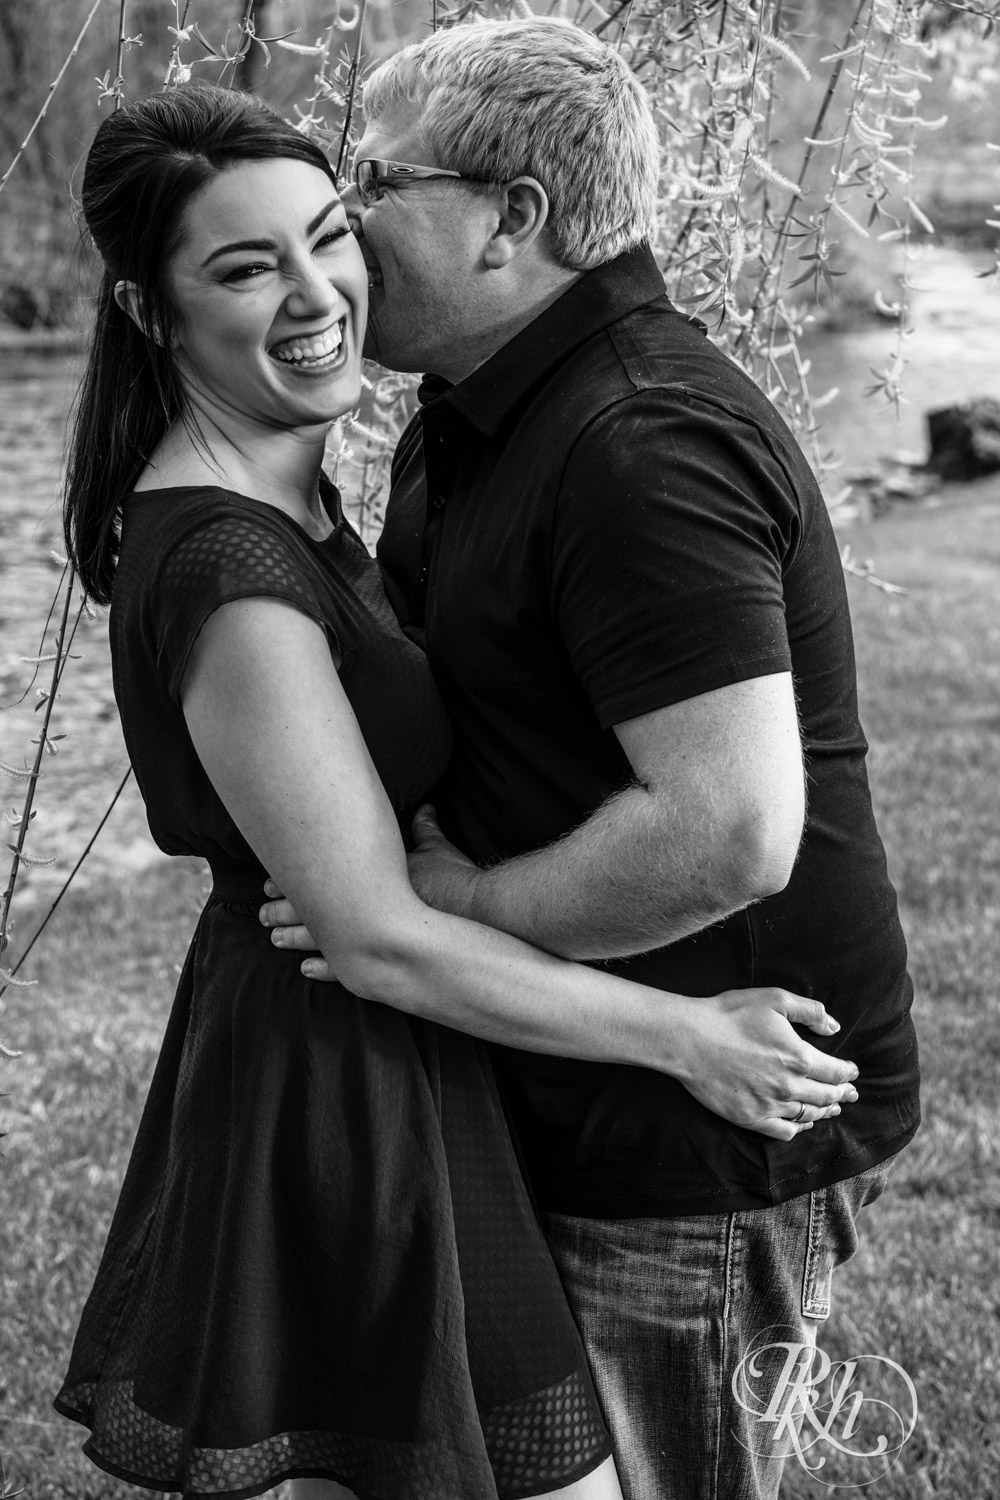 Chelsey & Erik - Minnesota Engagement Photography - Creekside Farm and Events - Rush City - RKH Images  (3 of 18).jpg